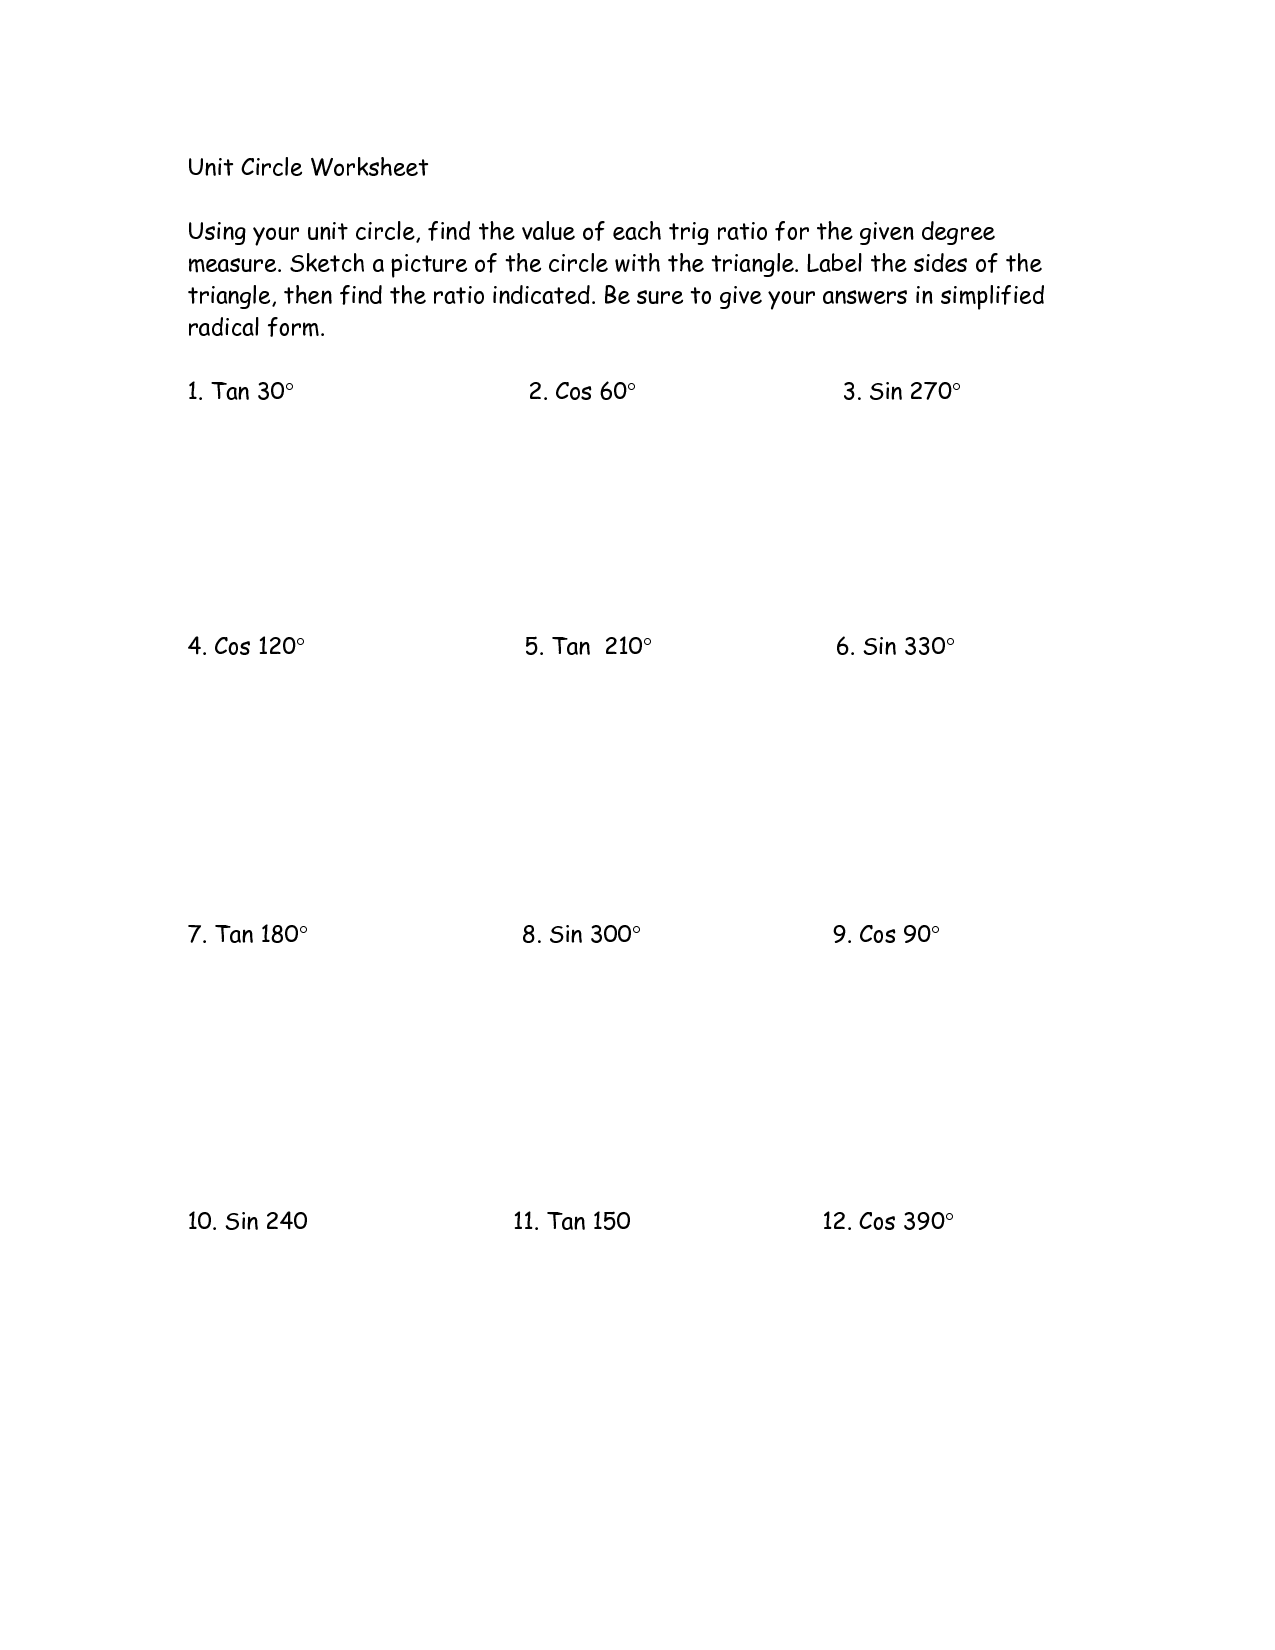 Unit Circle Worksheet With Answers